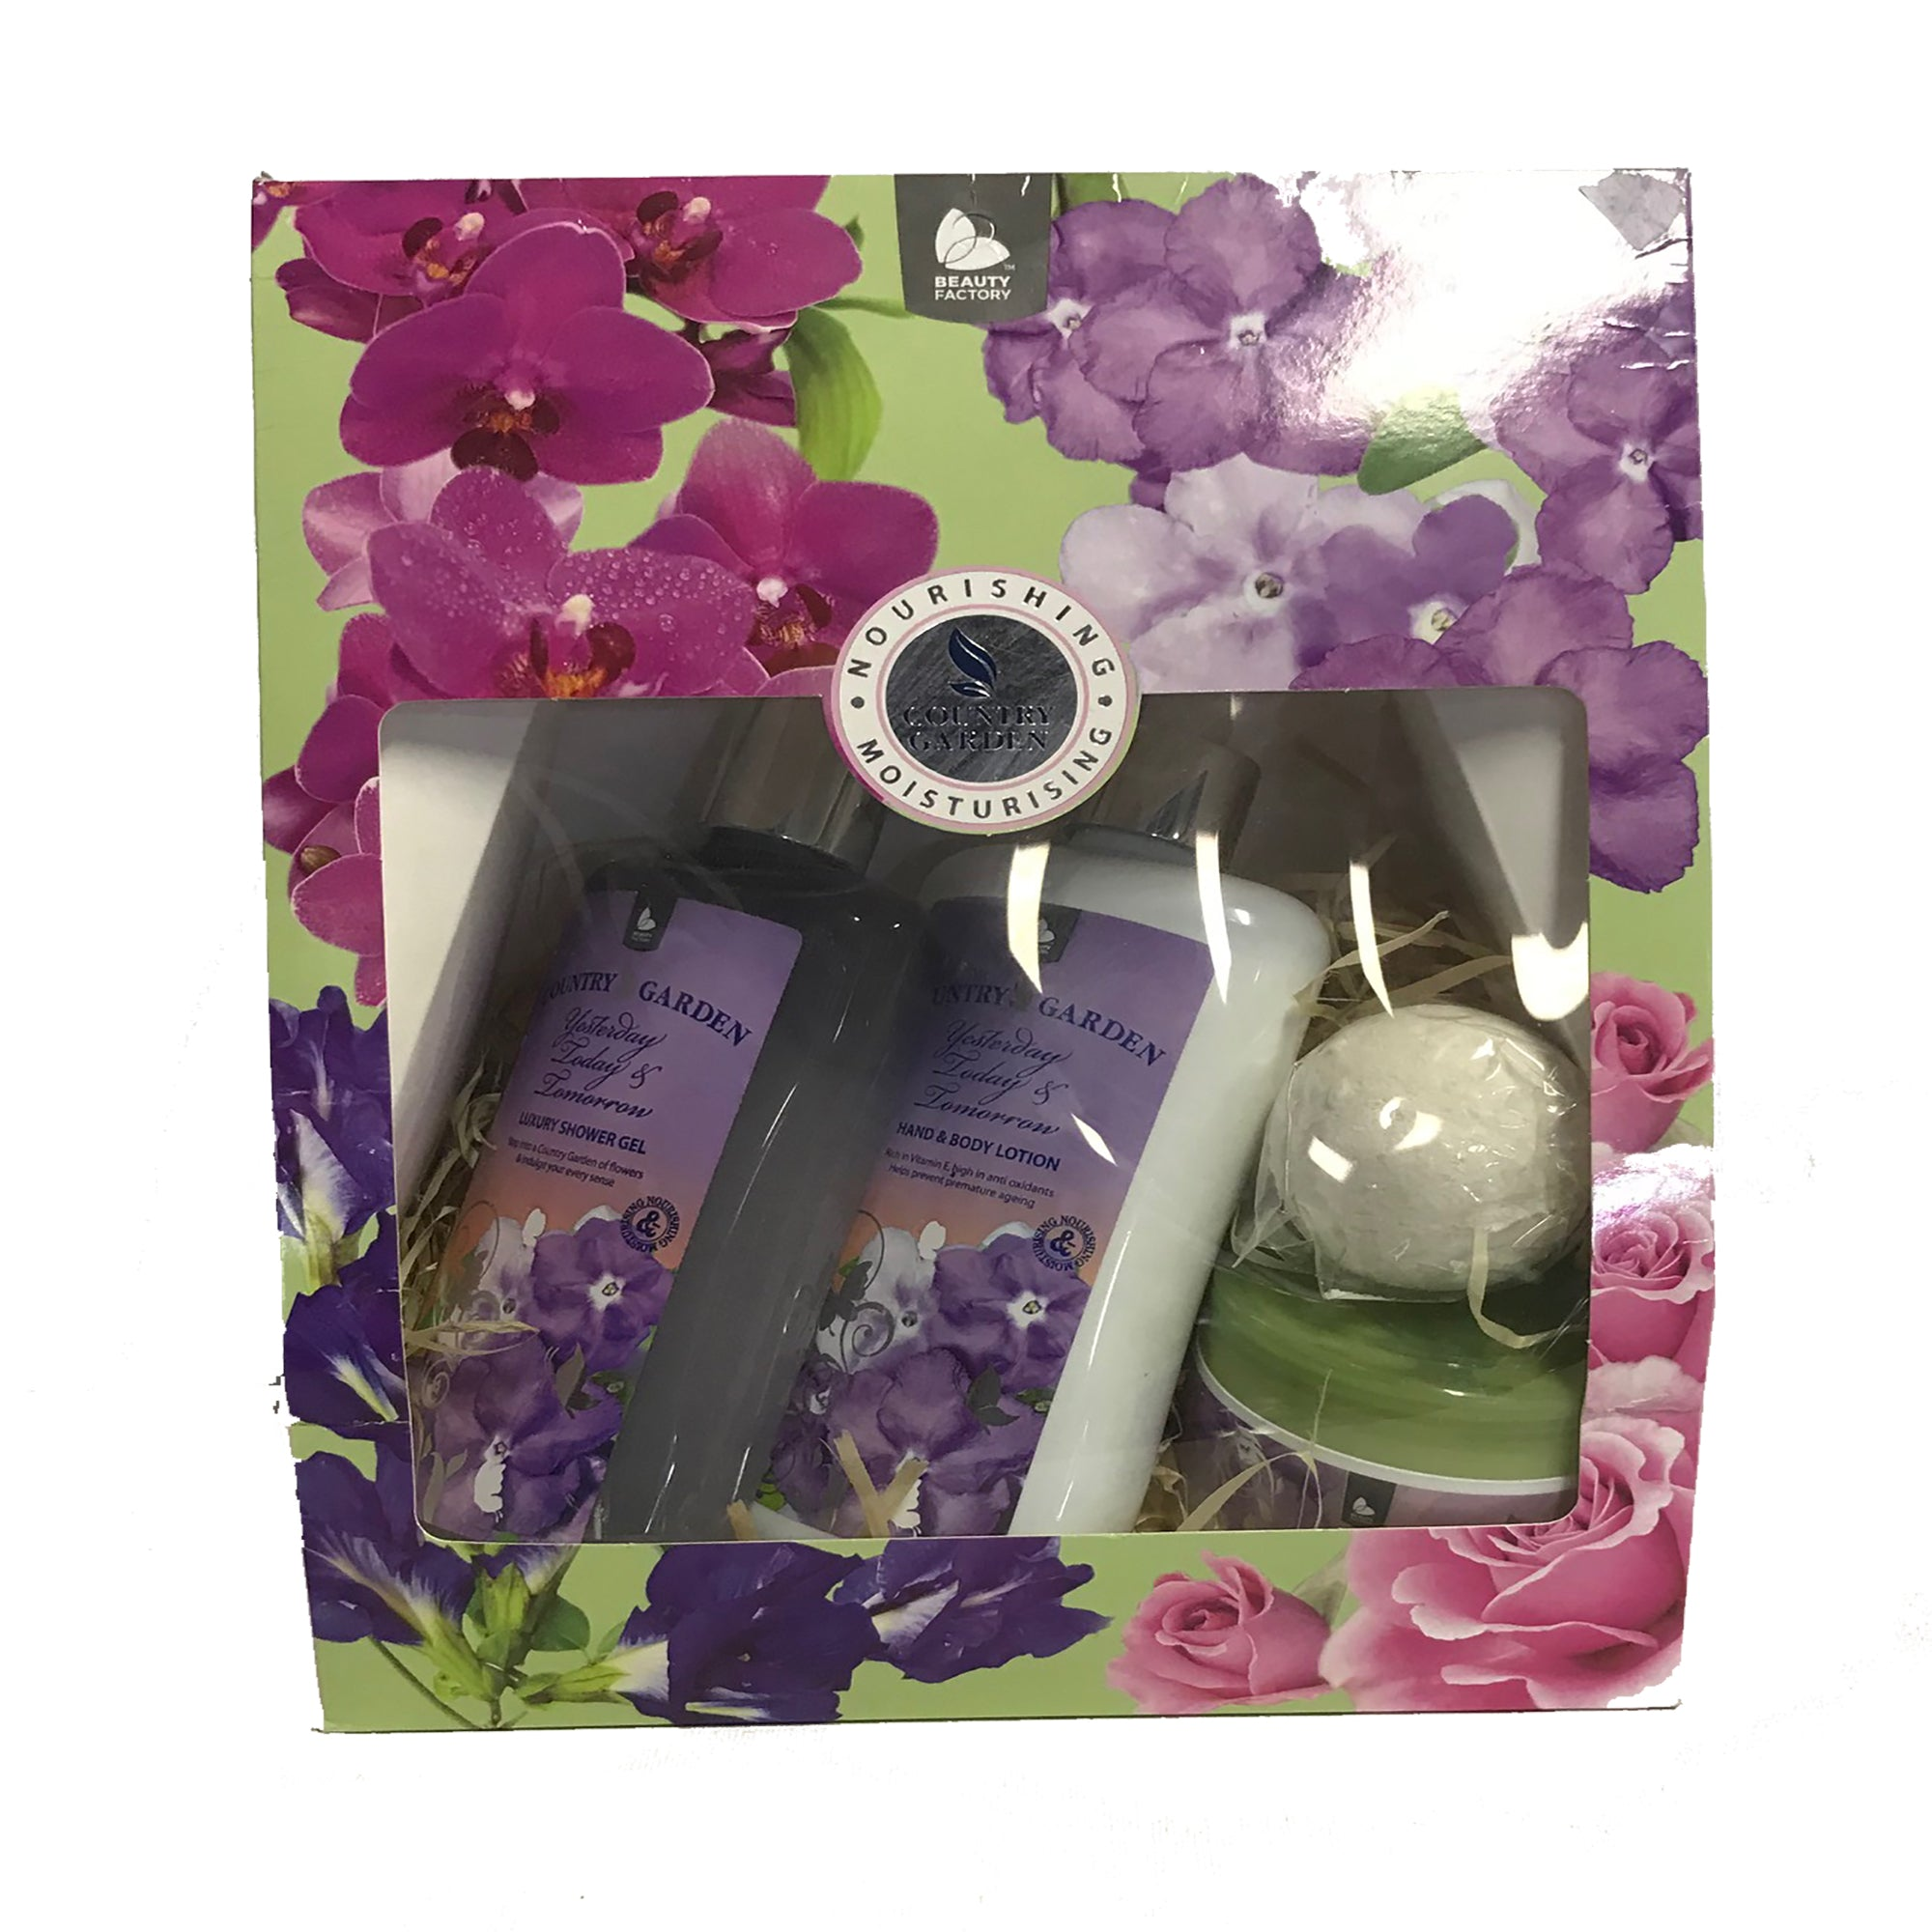 Yesterday, Today & Tomorrow Country Garden Gift Set - Now On Sale!